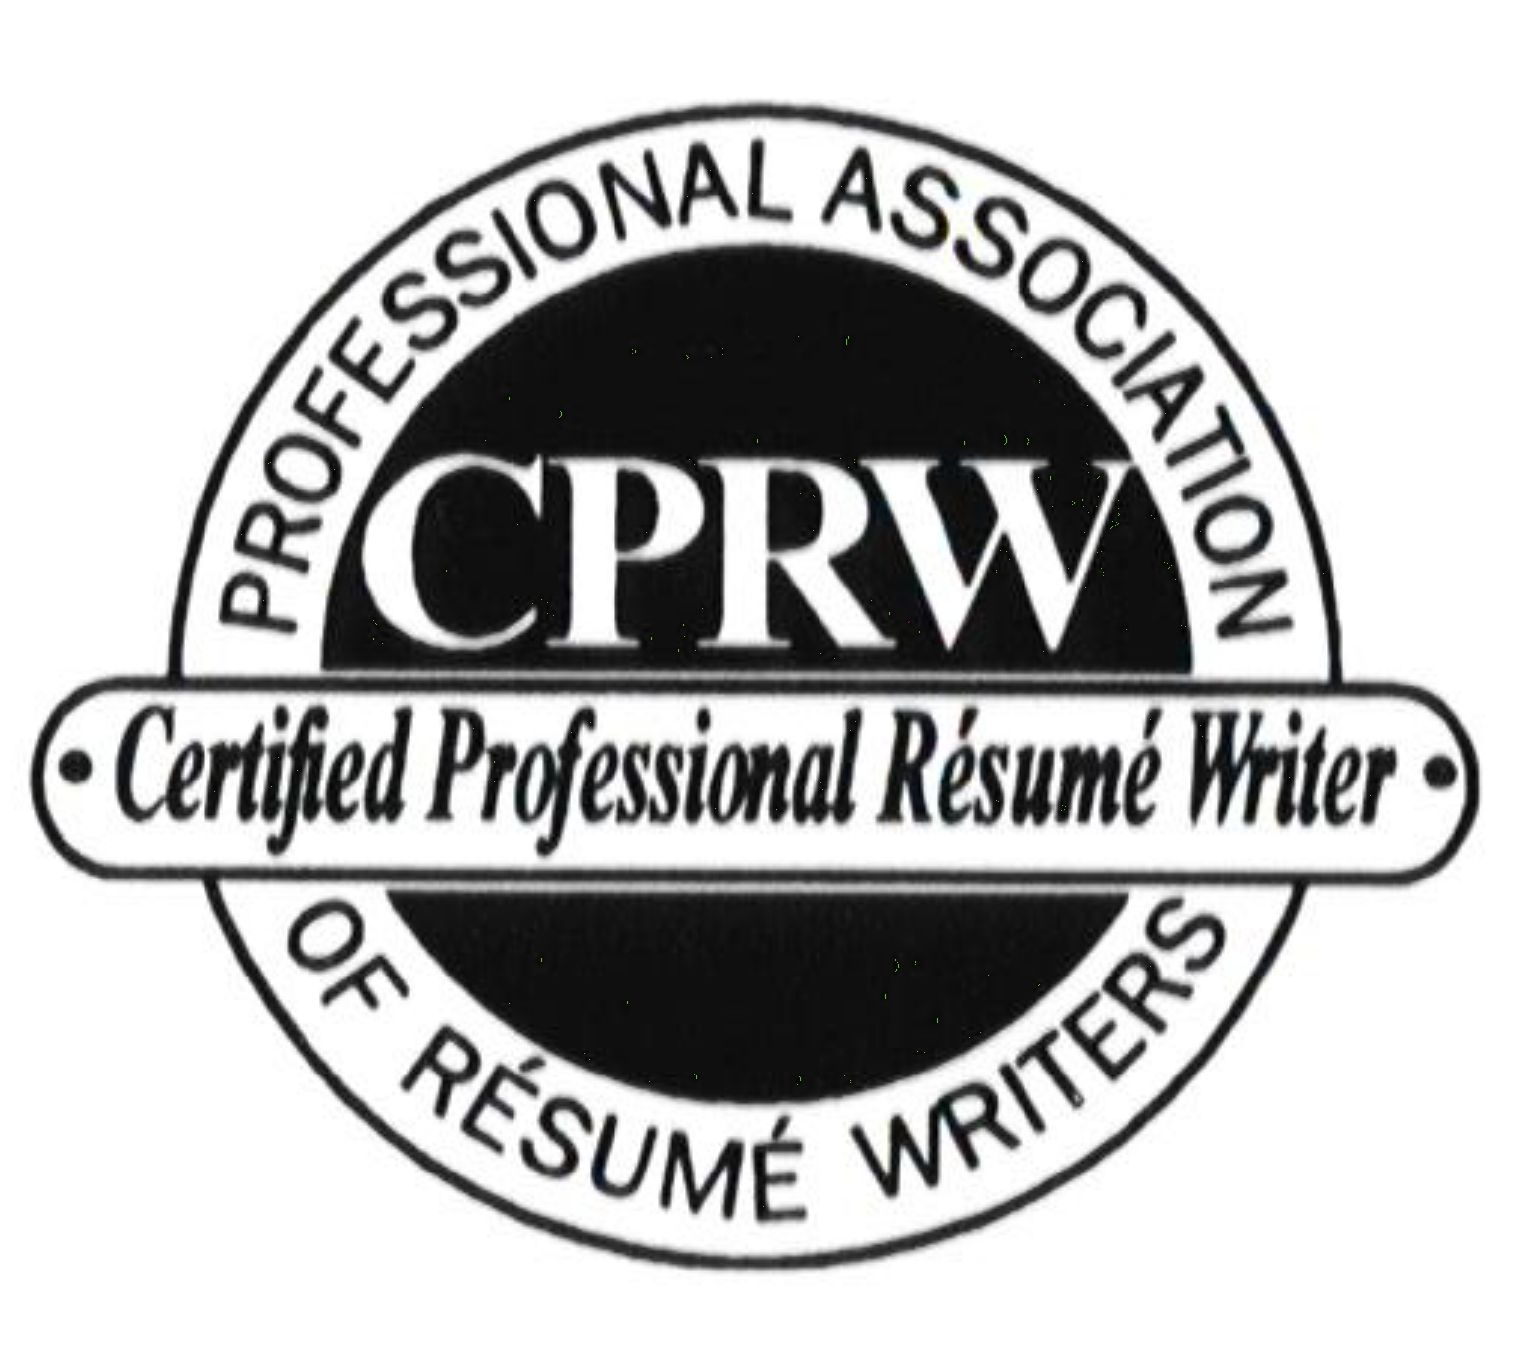 Certified Professional Resume Writer - Calgary, Alberta | Awards and ...